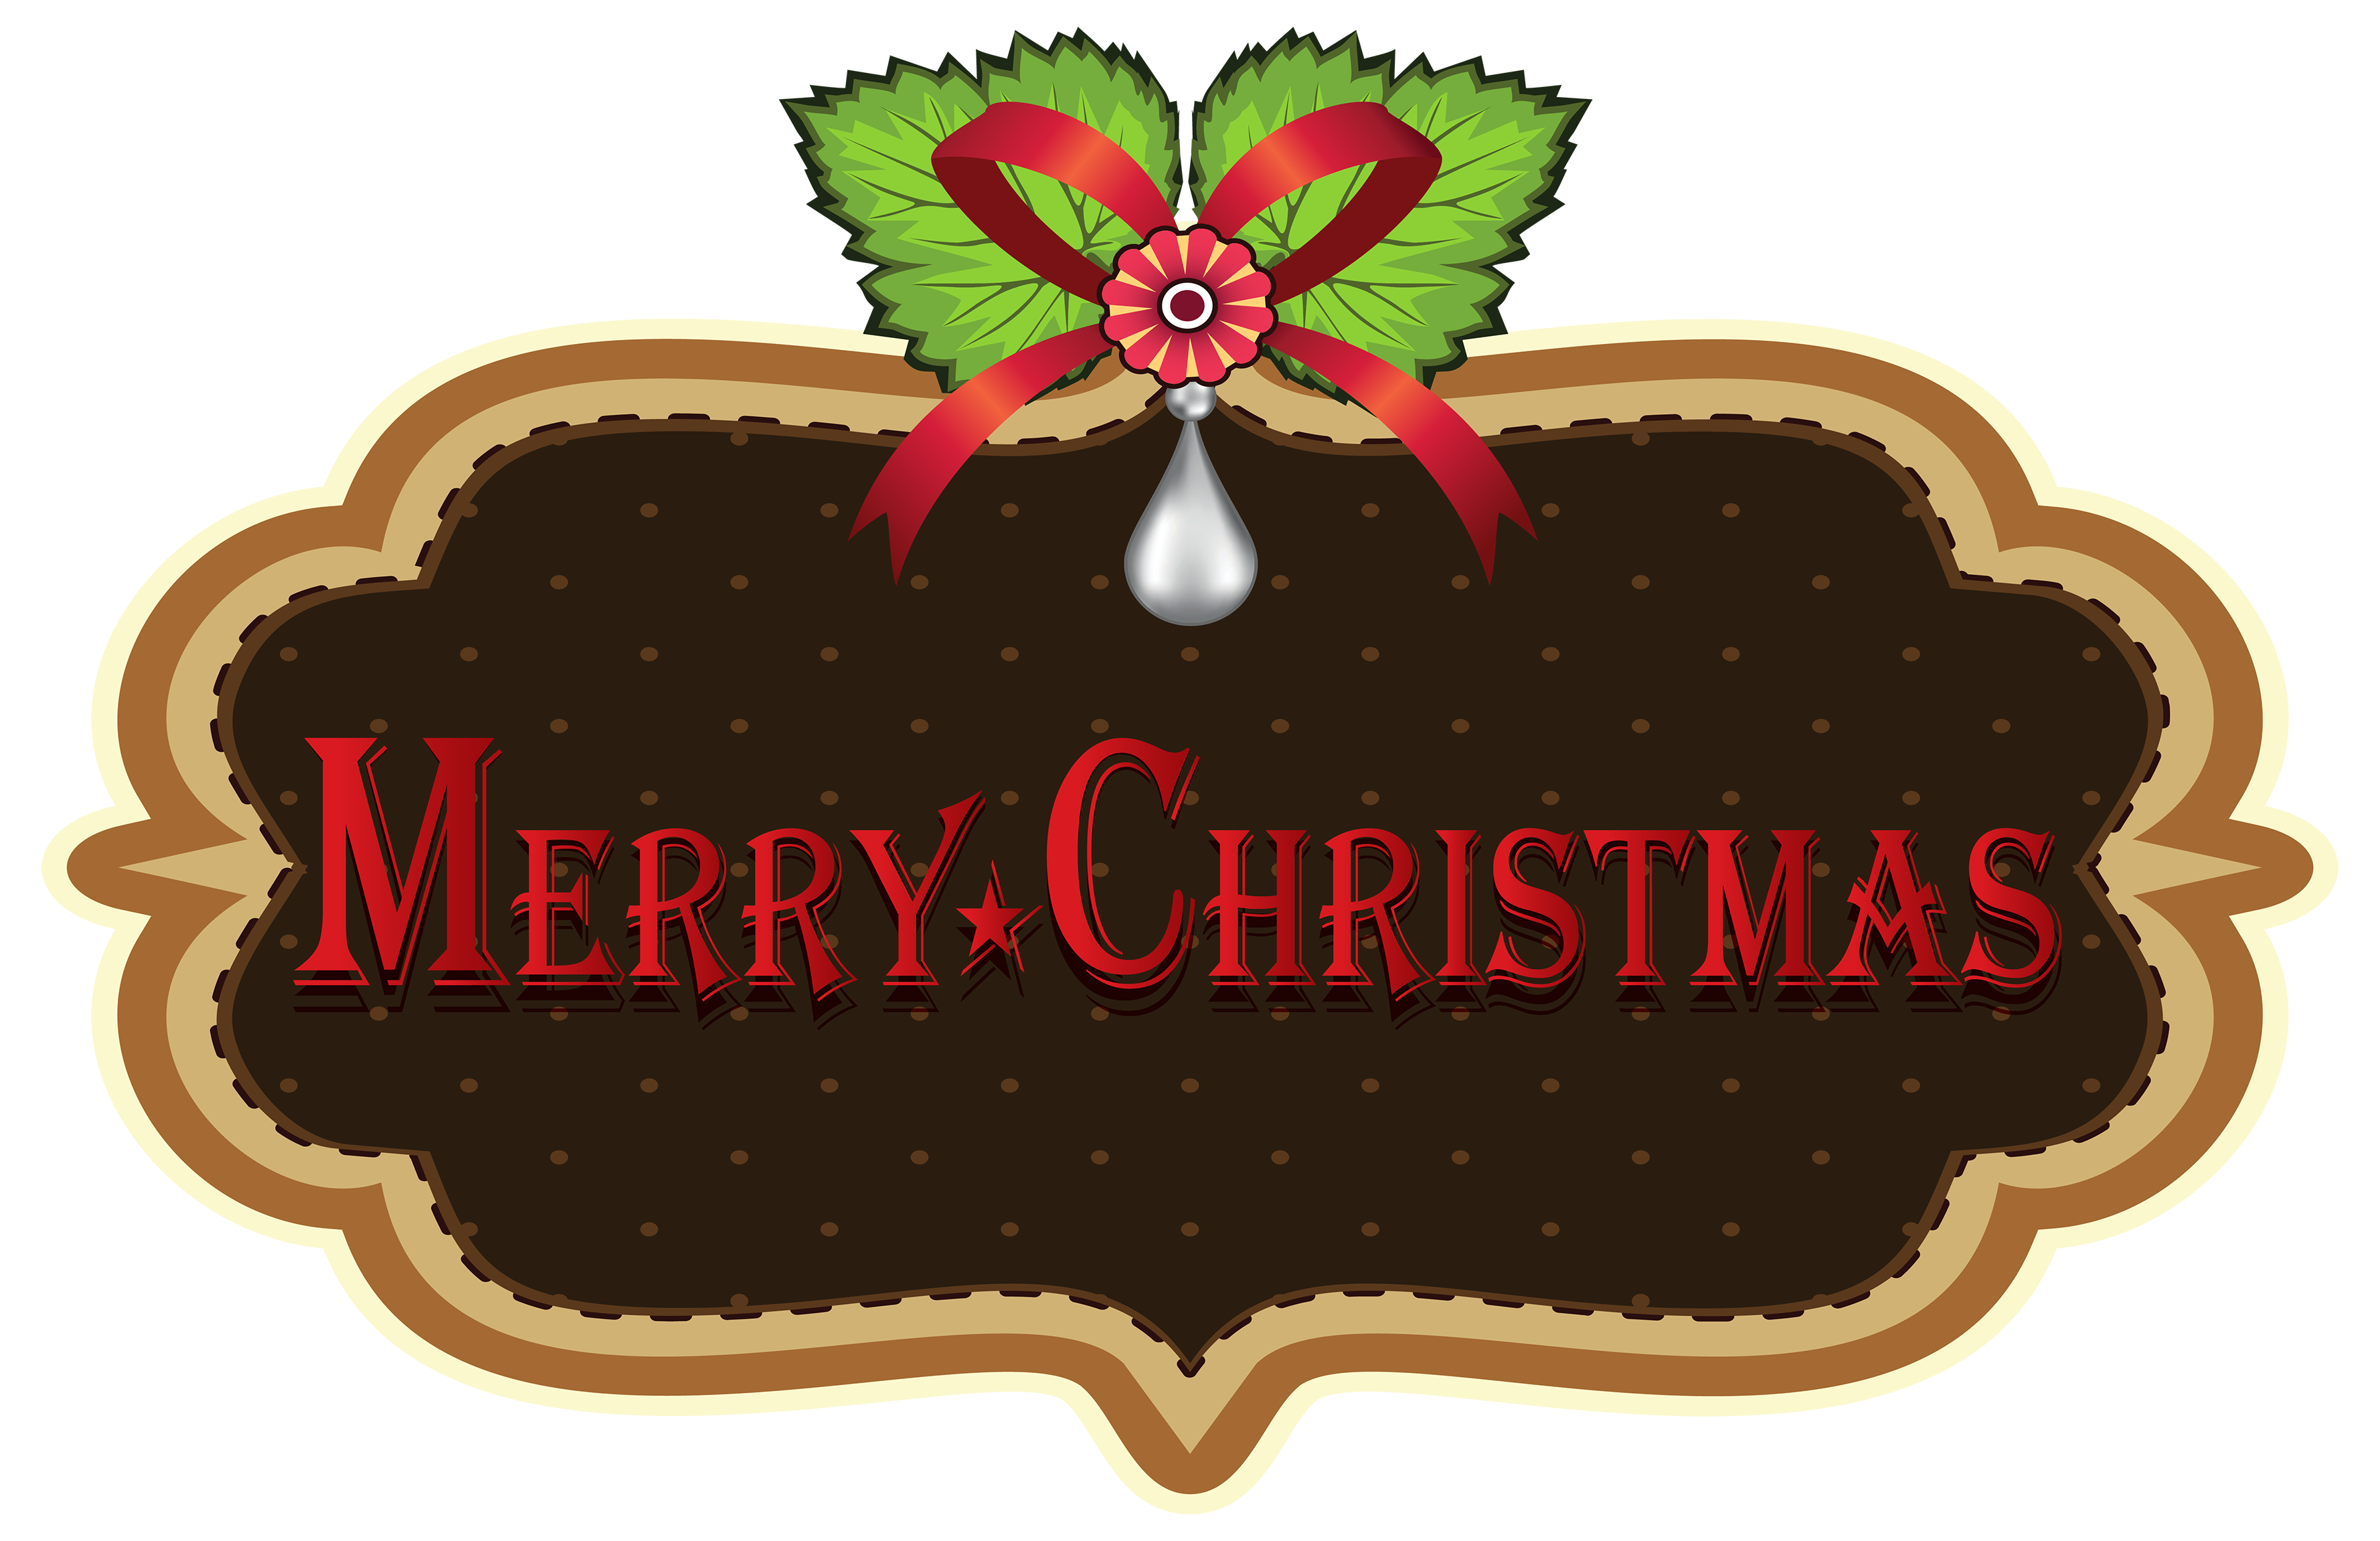 Merry christmas png best. Planets clipart label